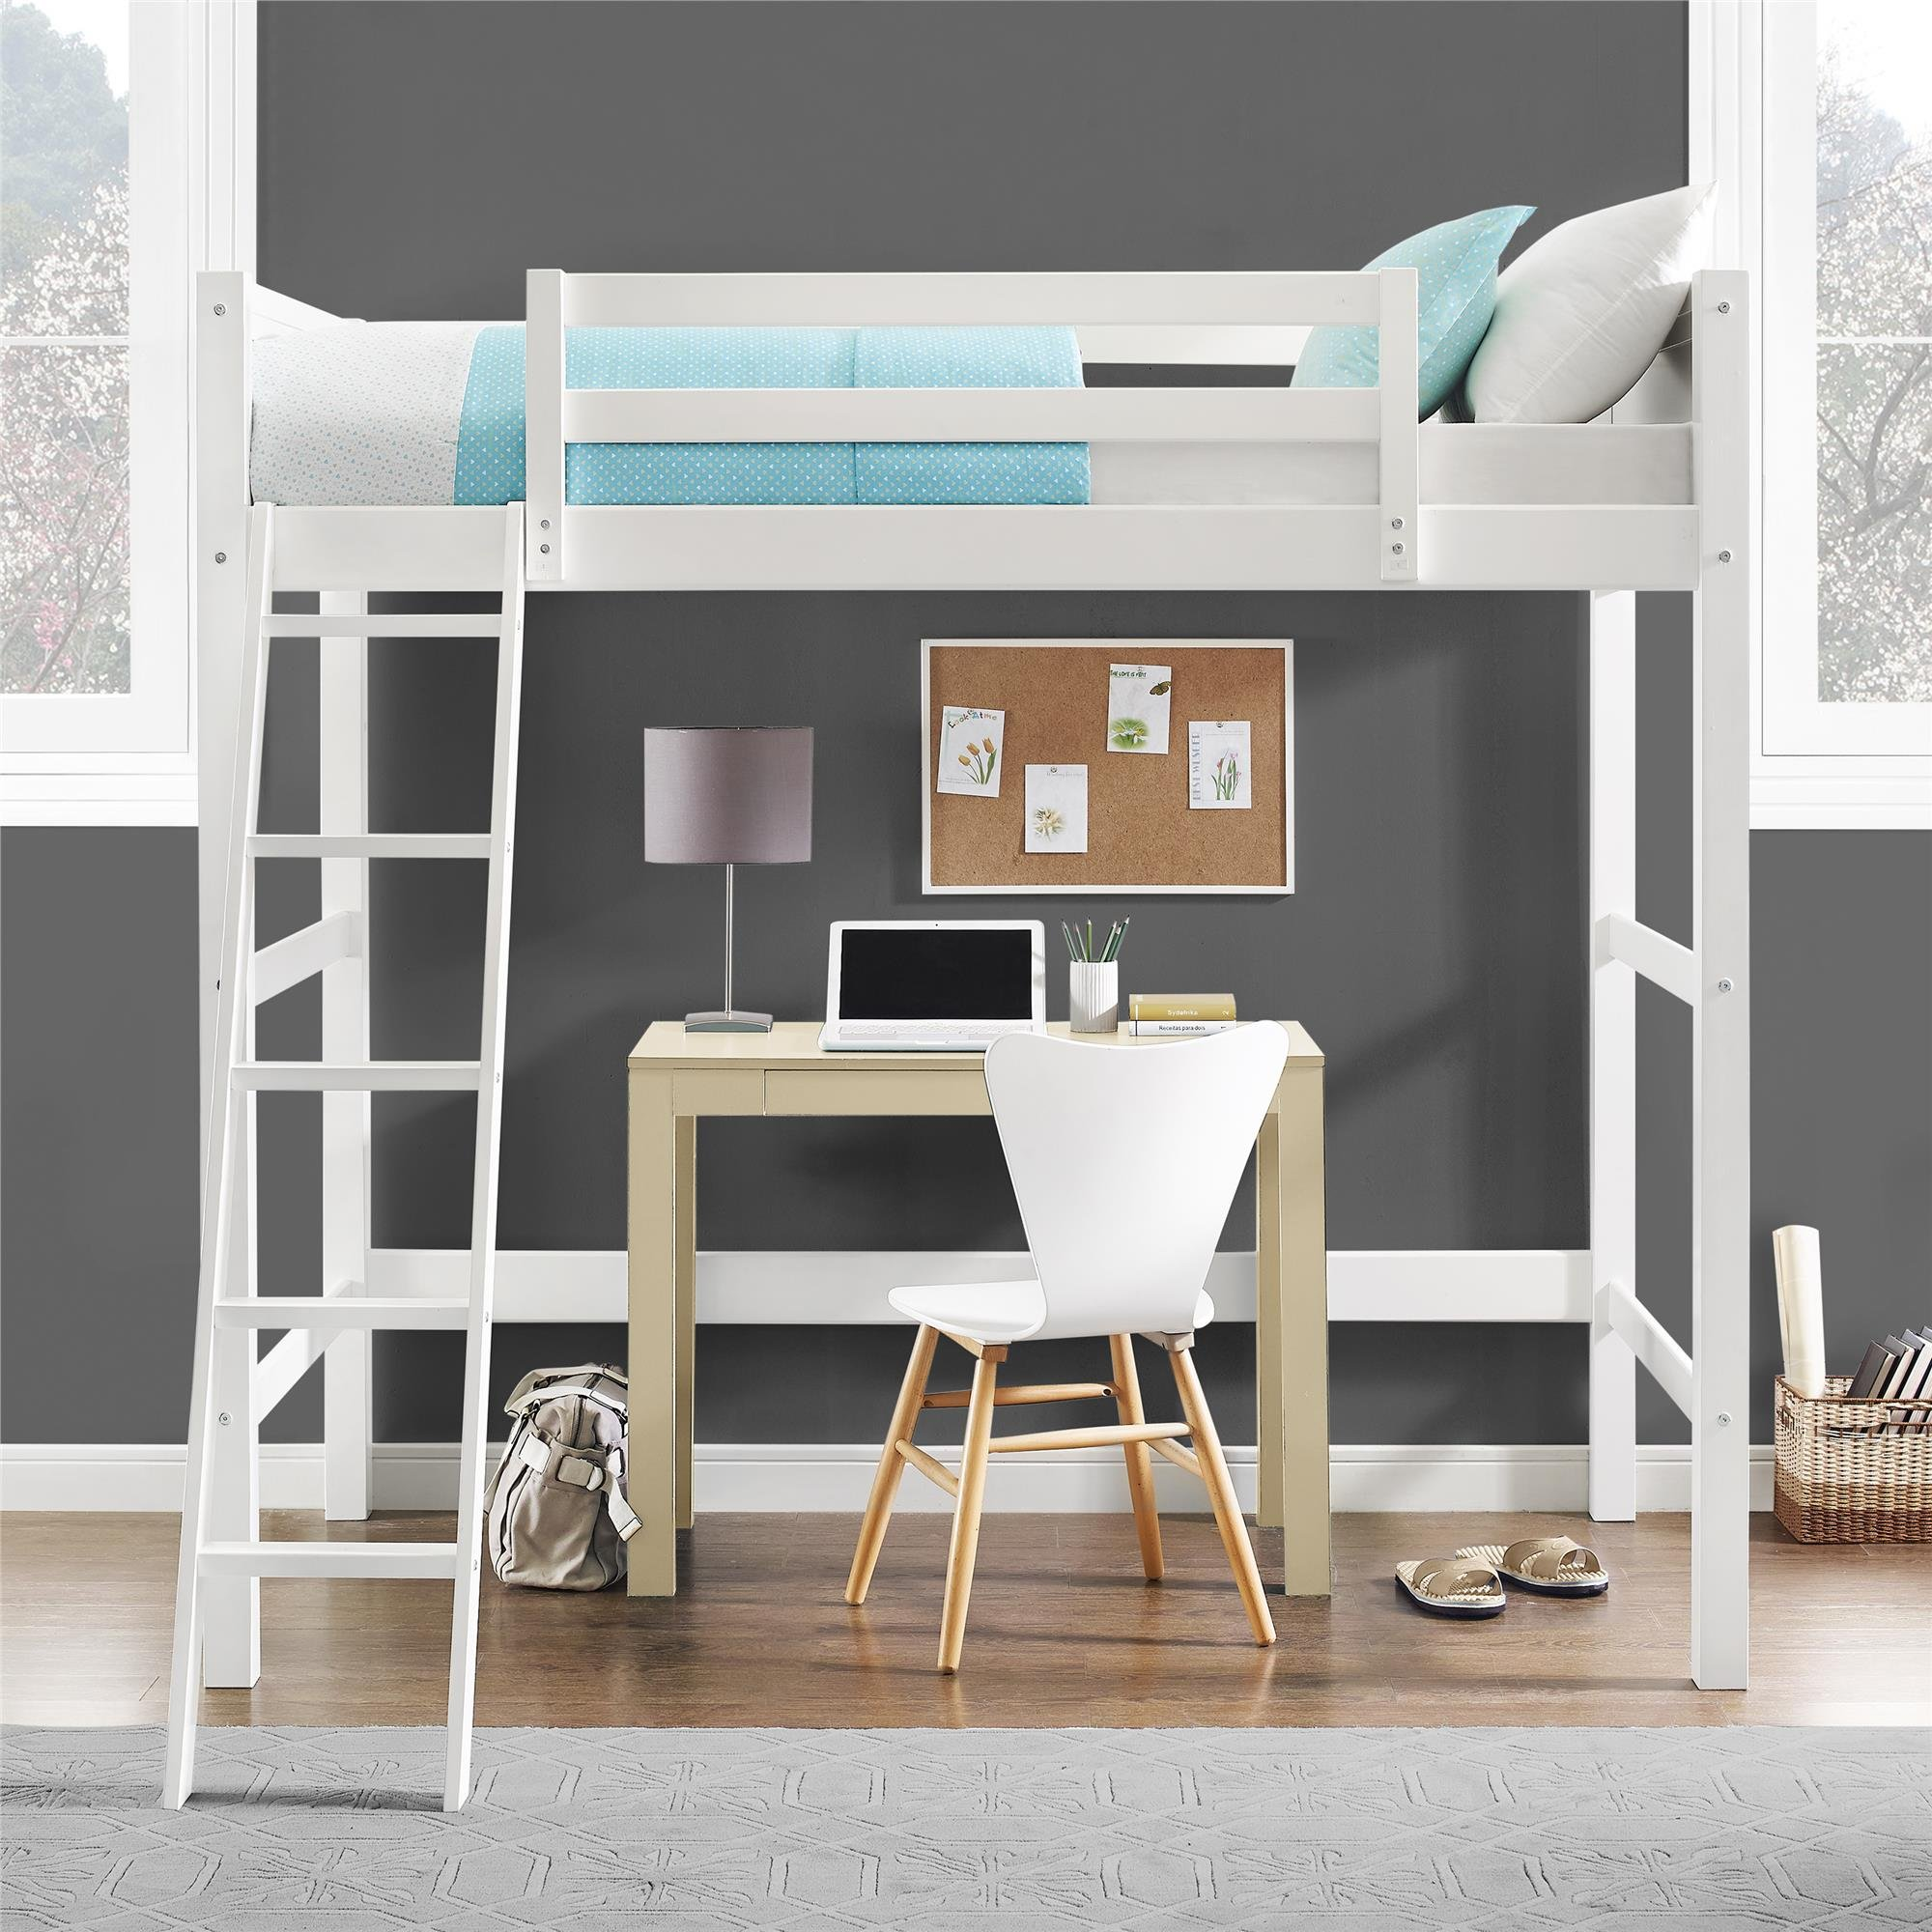 Dorel Living Wood Loft Style Bunk Bed, Twin by Dorel Living